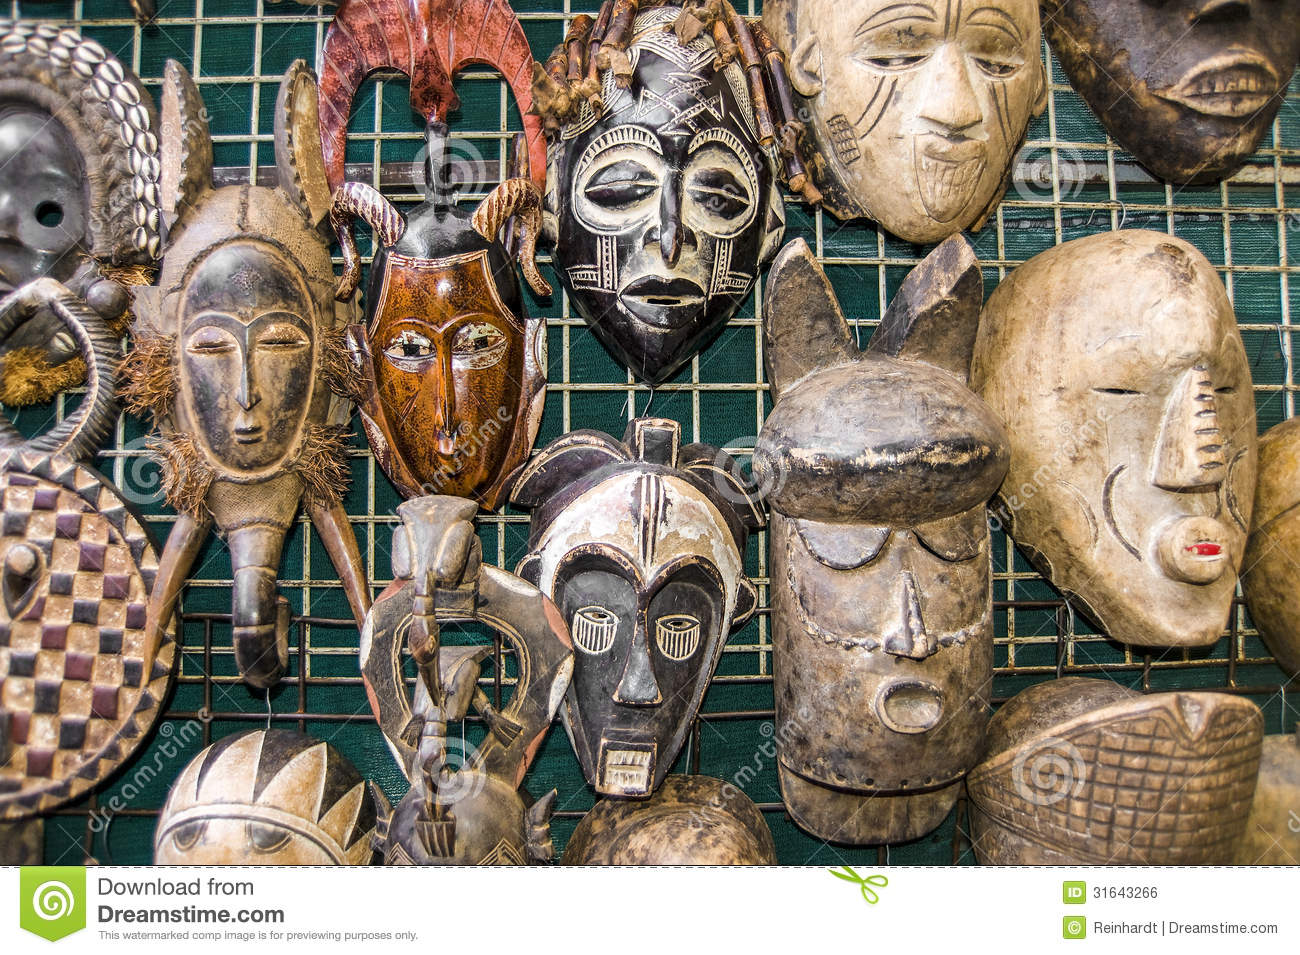 Beach house plans beach home plans beach house plan - African Masks Royalty Free Stock Image Image 31643266